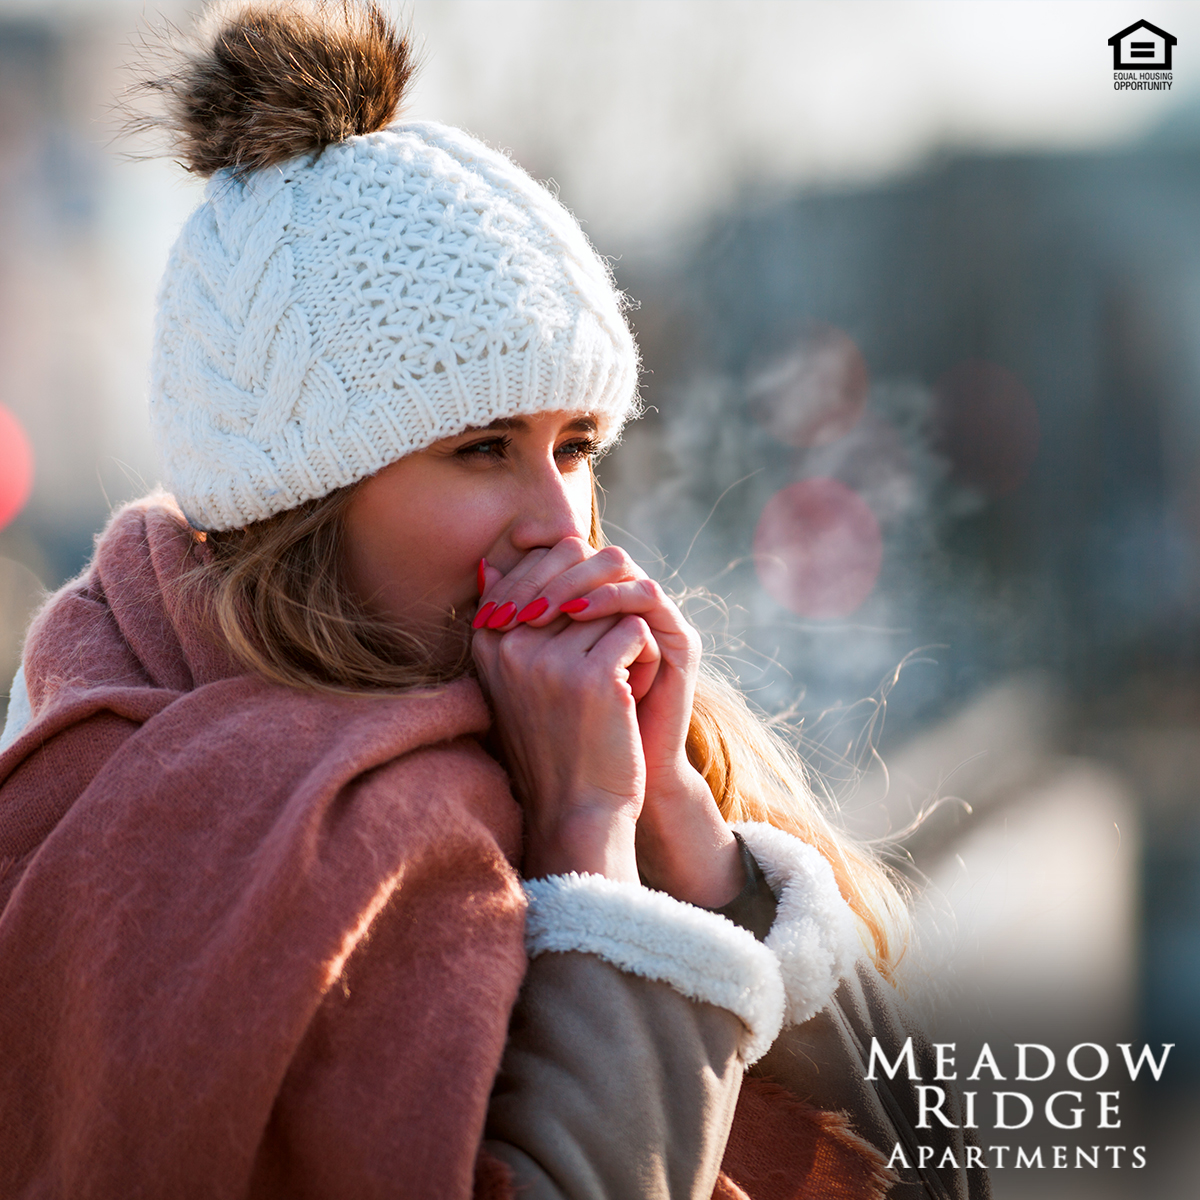 It's not just Friday. It's #NationalHatDay too! Show off your #winterstyle with fur flare! Look cute and be warm! #meadowridge